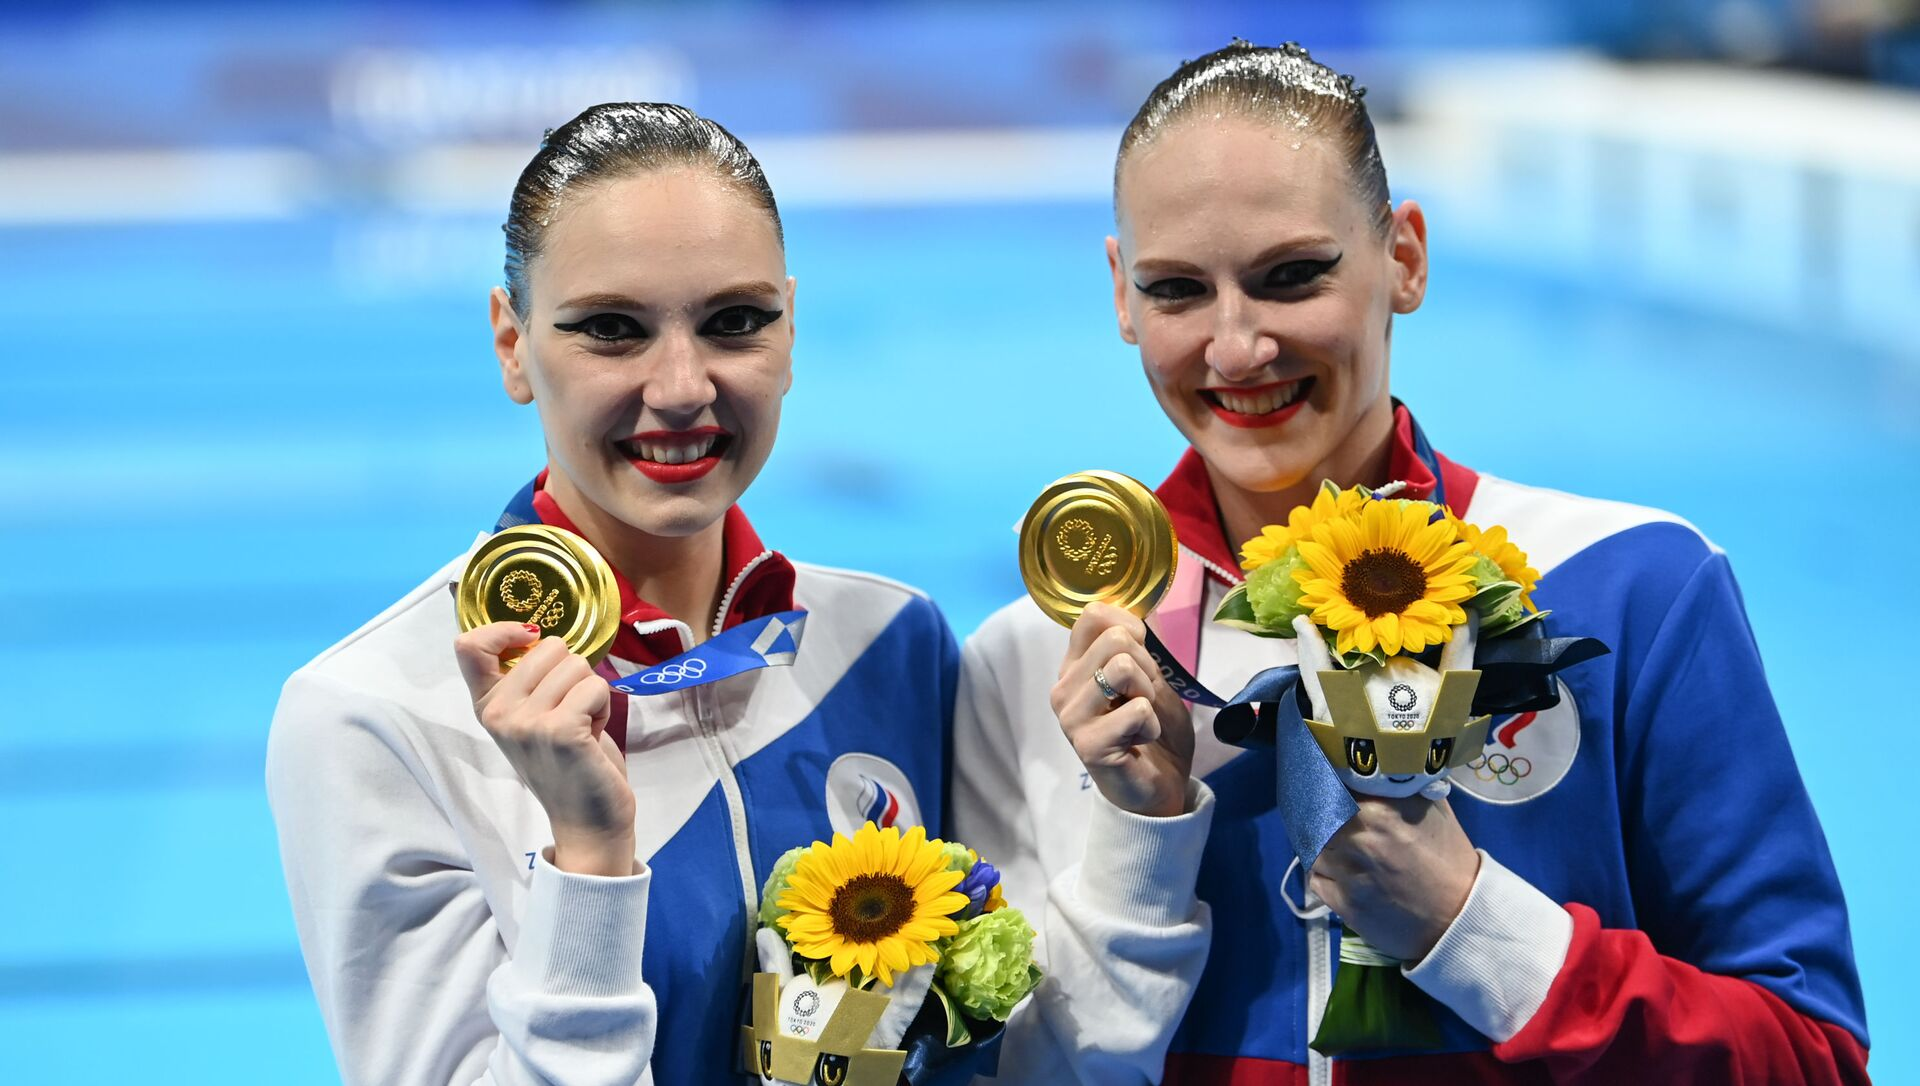 Russian artistic swimming duo, Svetlana Kolesnichenko and Svetlana Romashina (R), react after they won gold for their freestyle routine at the 2020 Tokyo Olympics, 4 August 2021 - Sputnik International, 1920, 04.08.2021